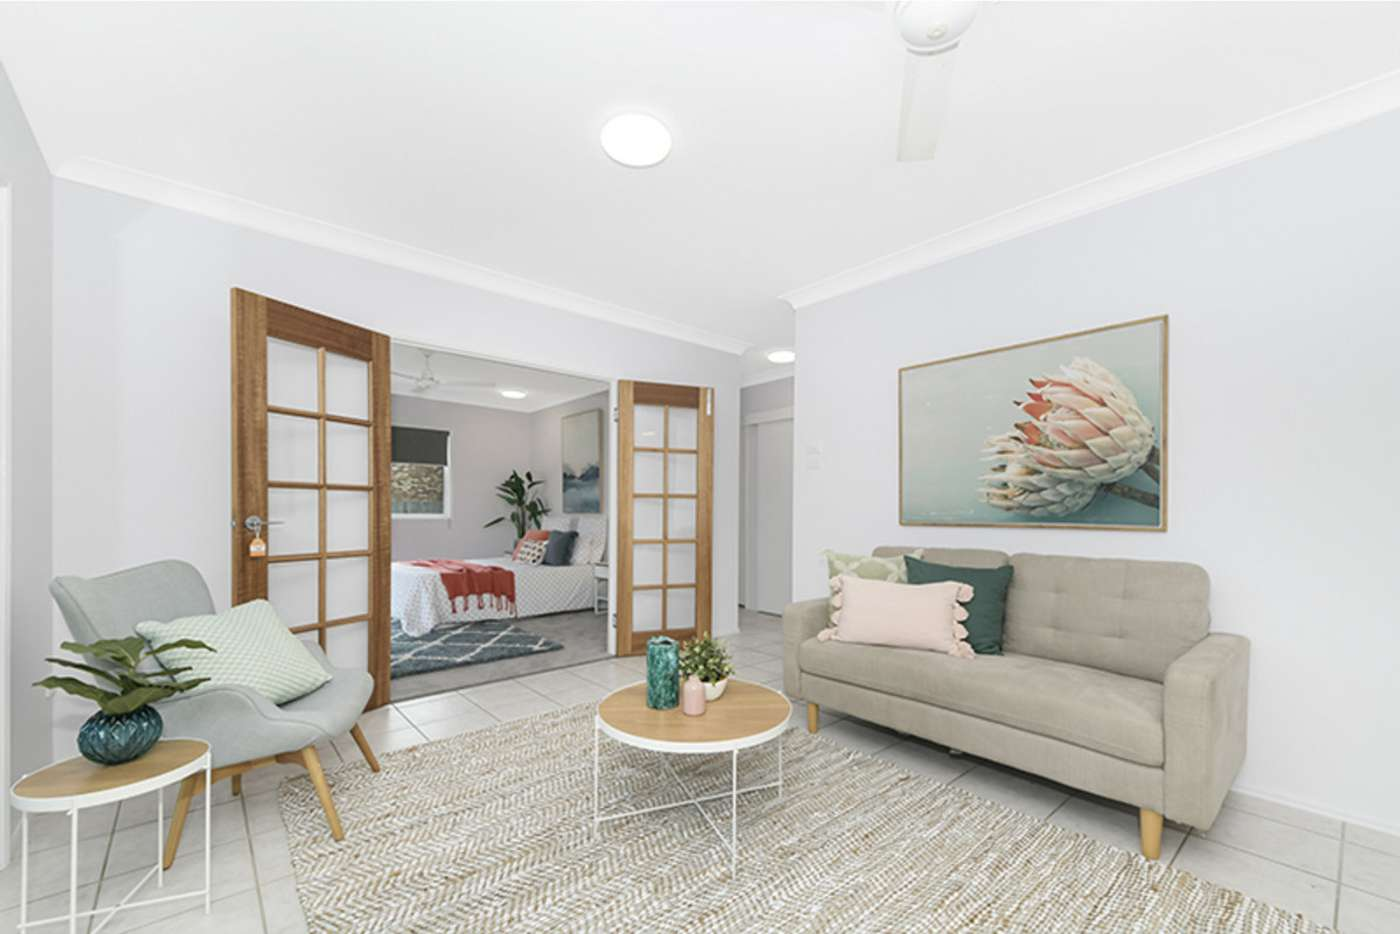 Sixth view of Homely house listing, 2 Dianella Court, Annandale QLD 4814